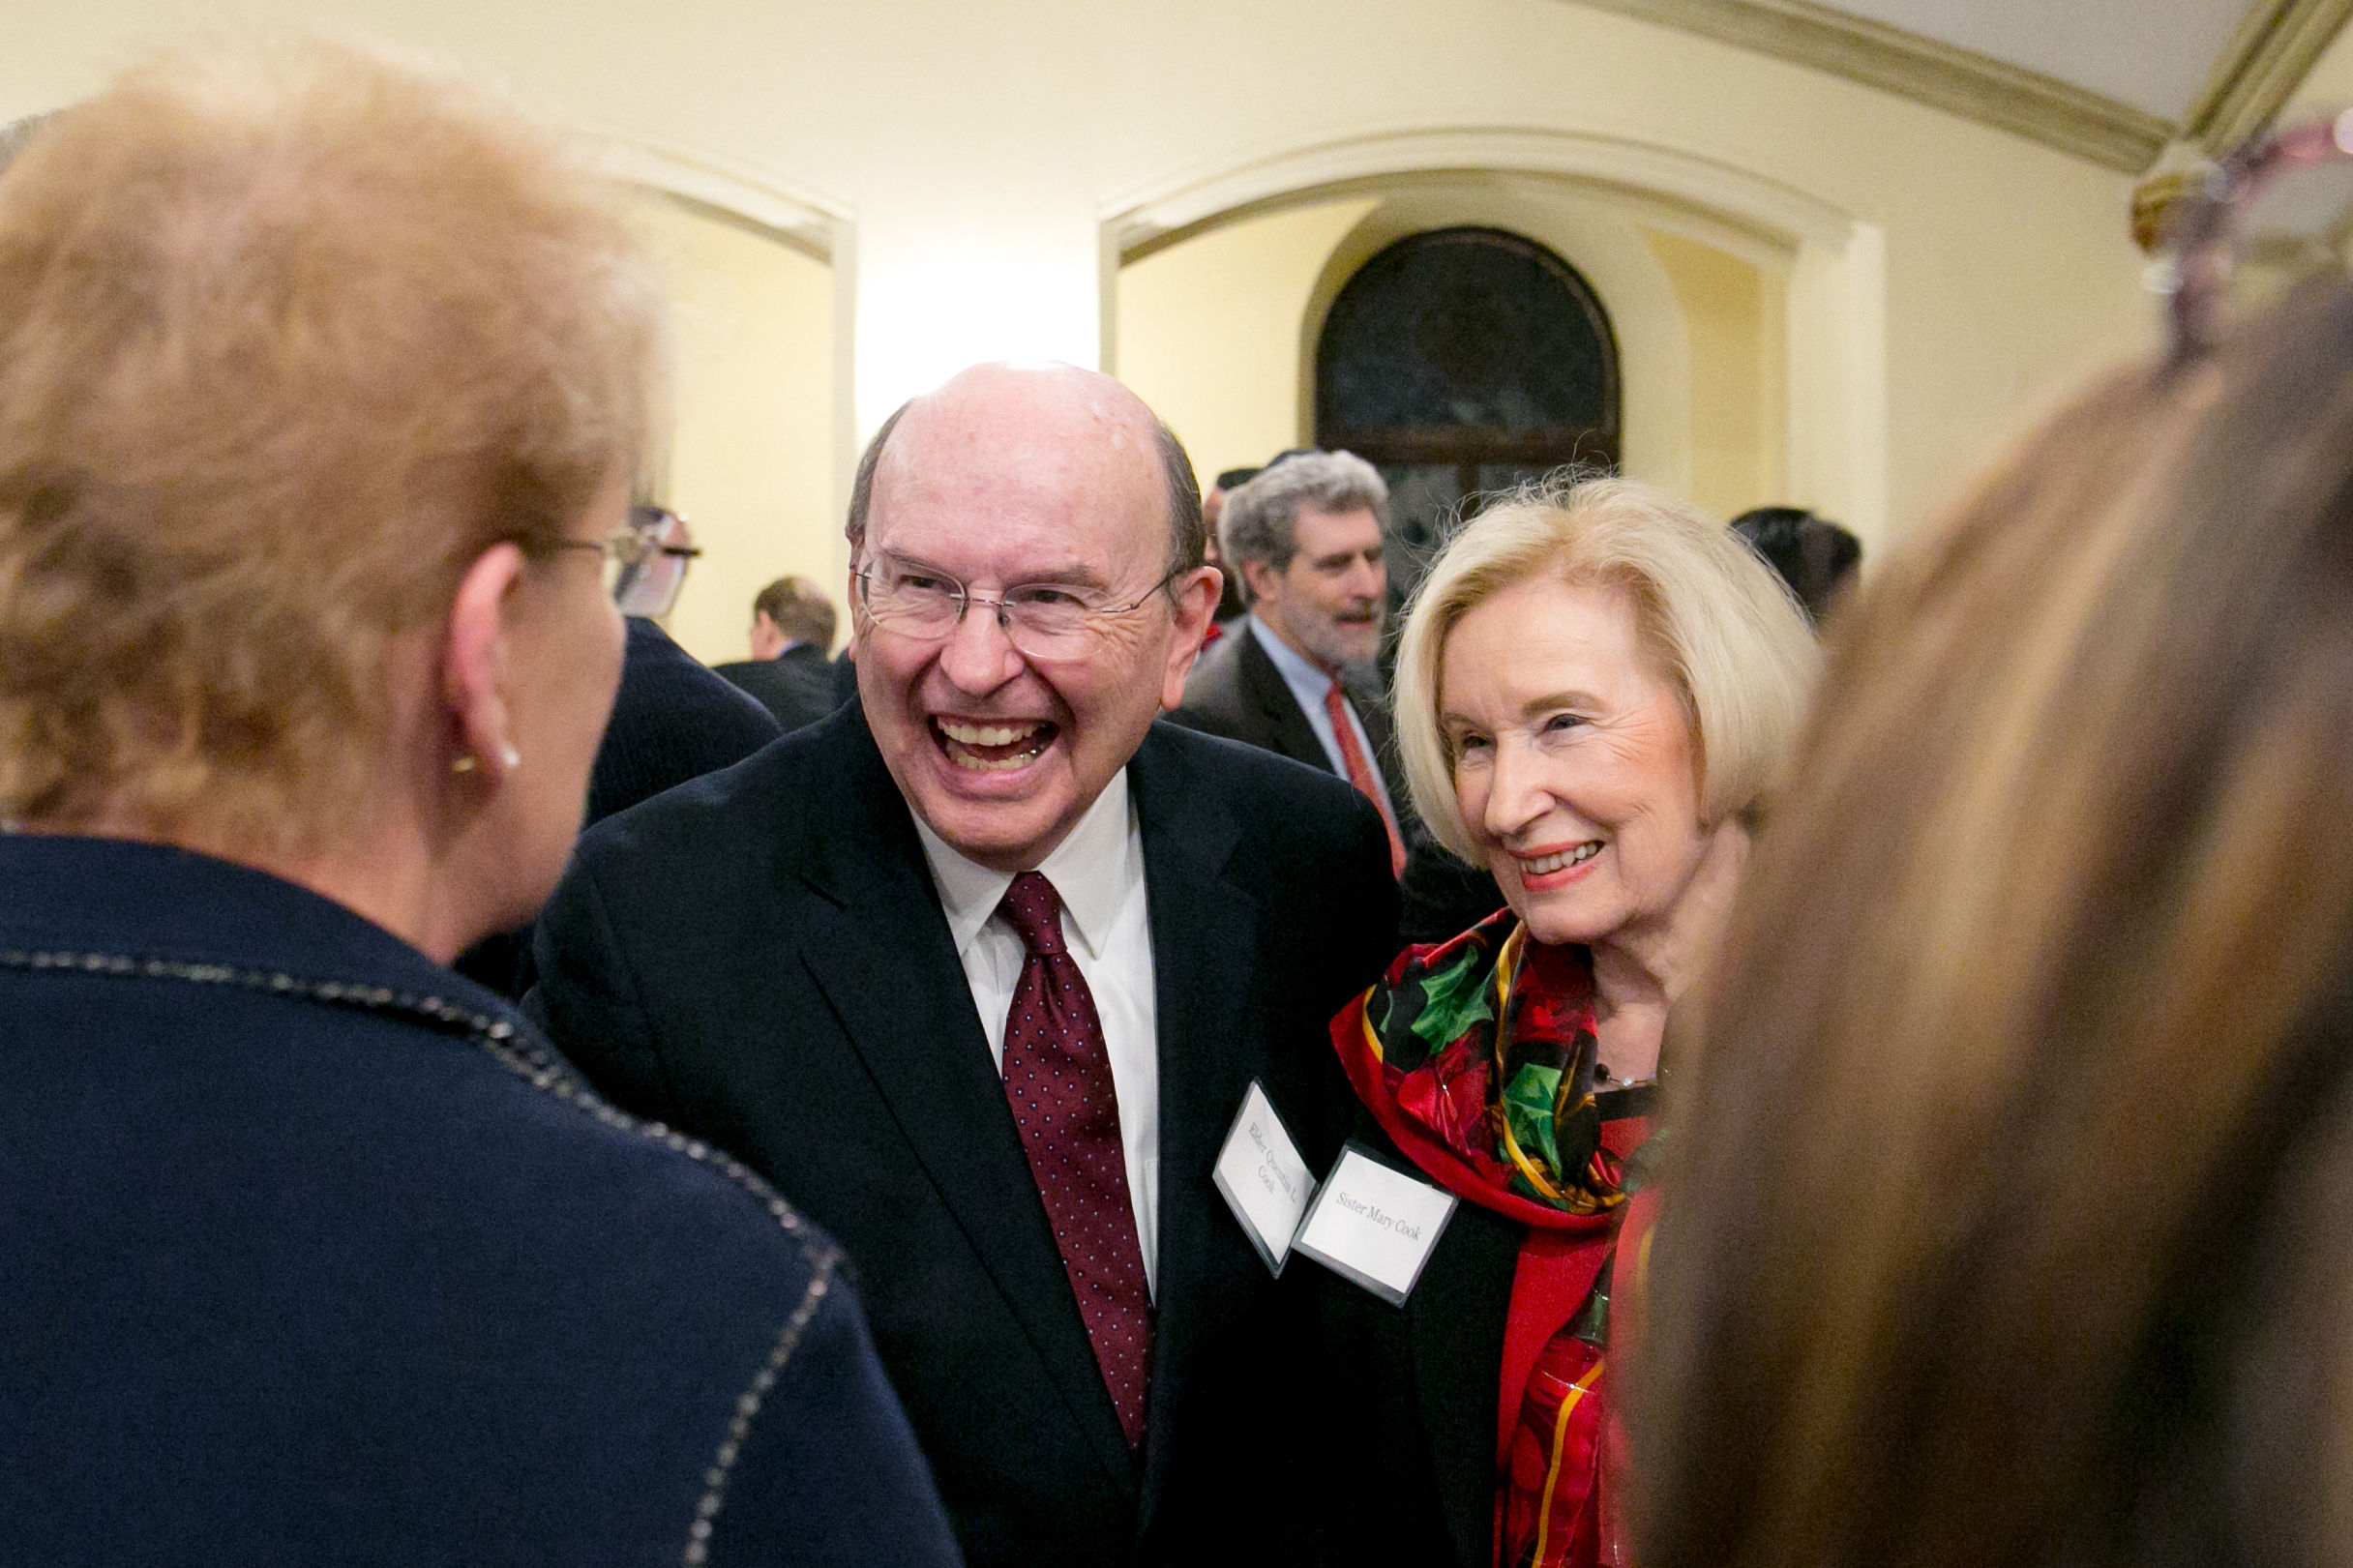 Elder Quentin L. Cook and his wife, Sister Mary G. Cook, visit with guests after the New York Latter-day Saint Professional Association dinner, held in the historic Riverside Chapel in Manhattan on Dec. 18.